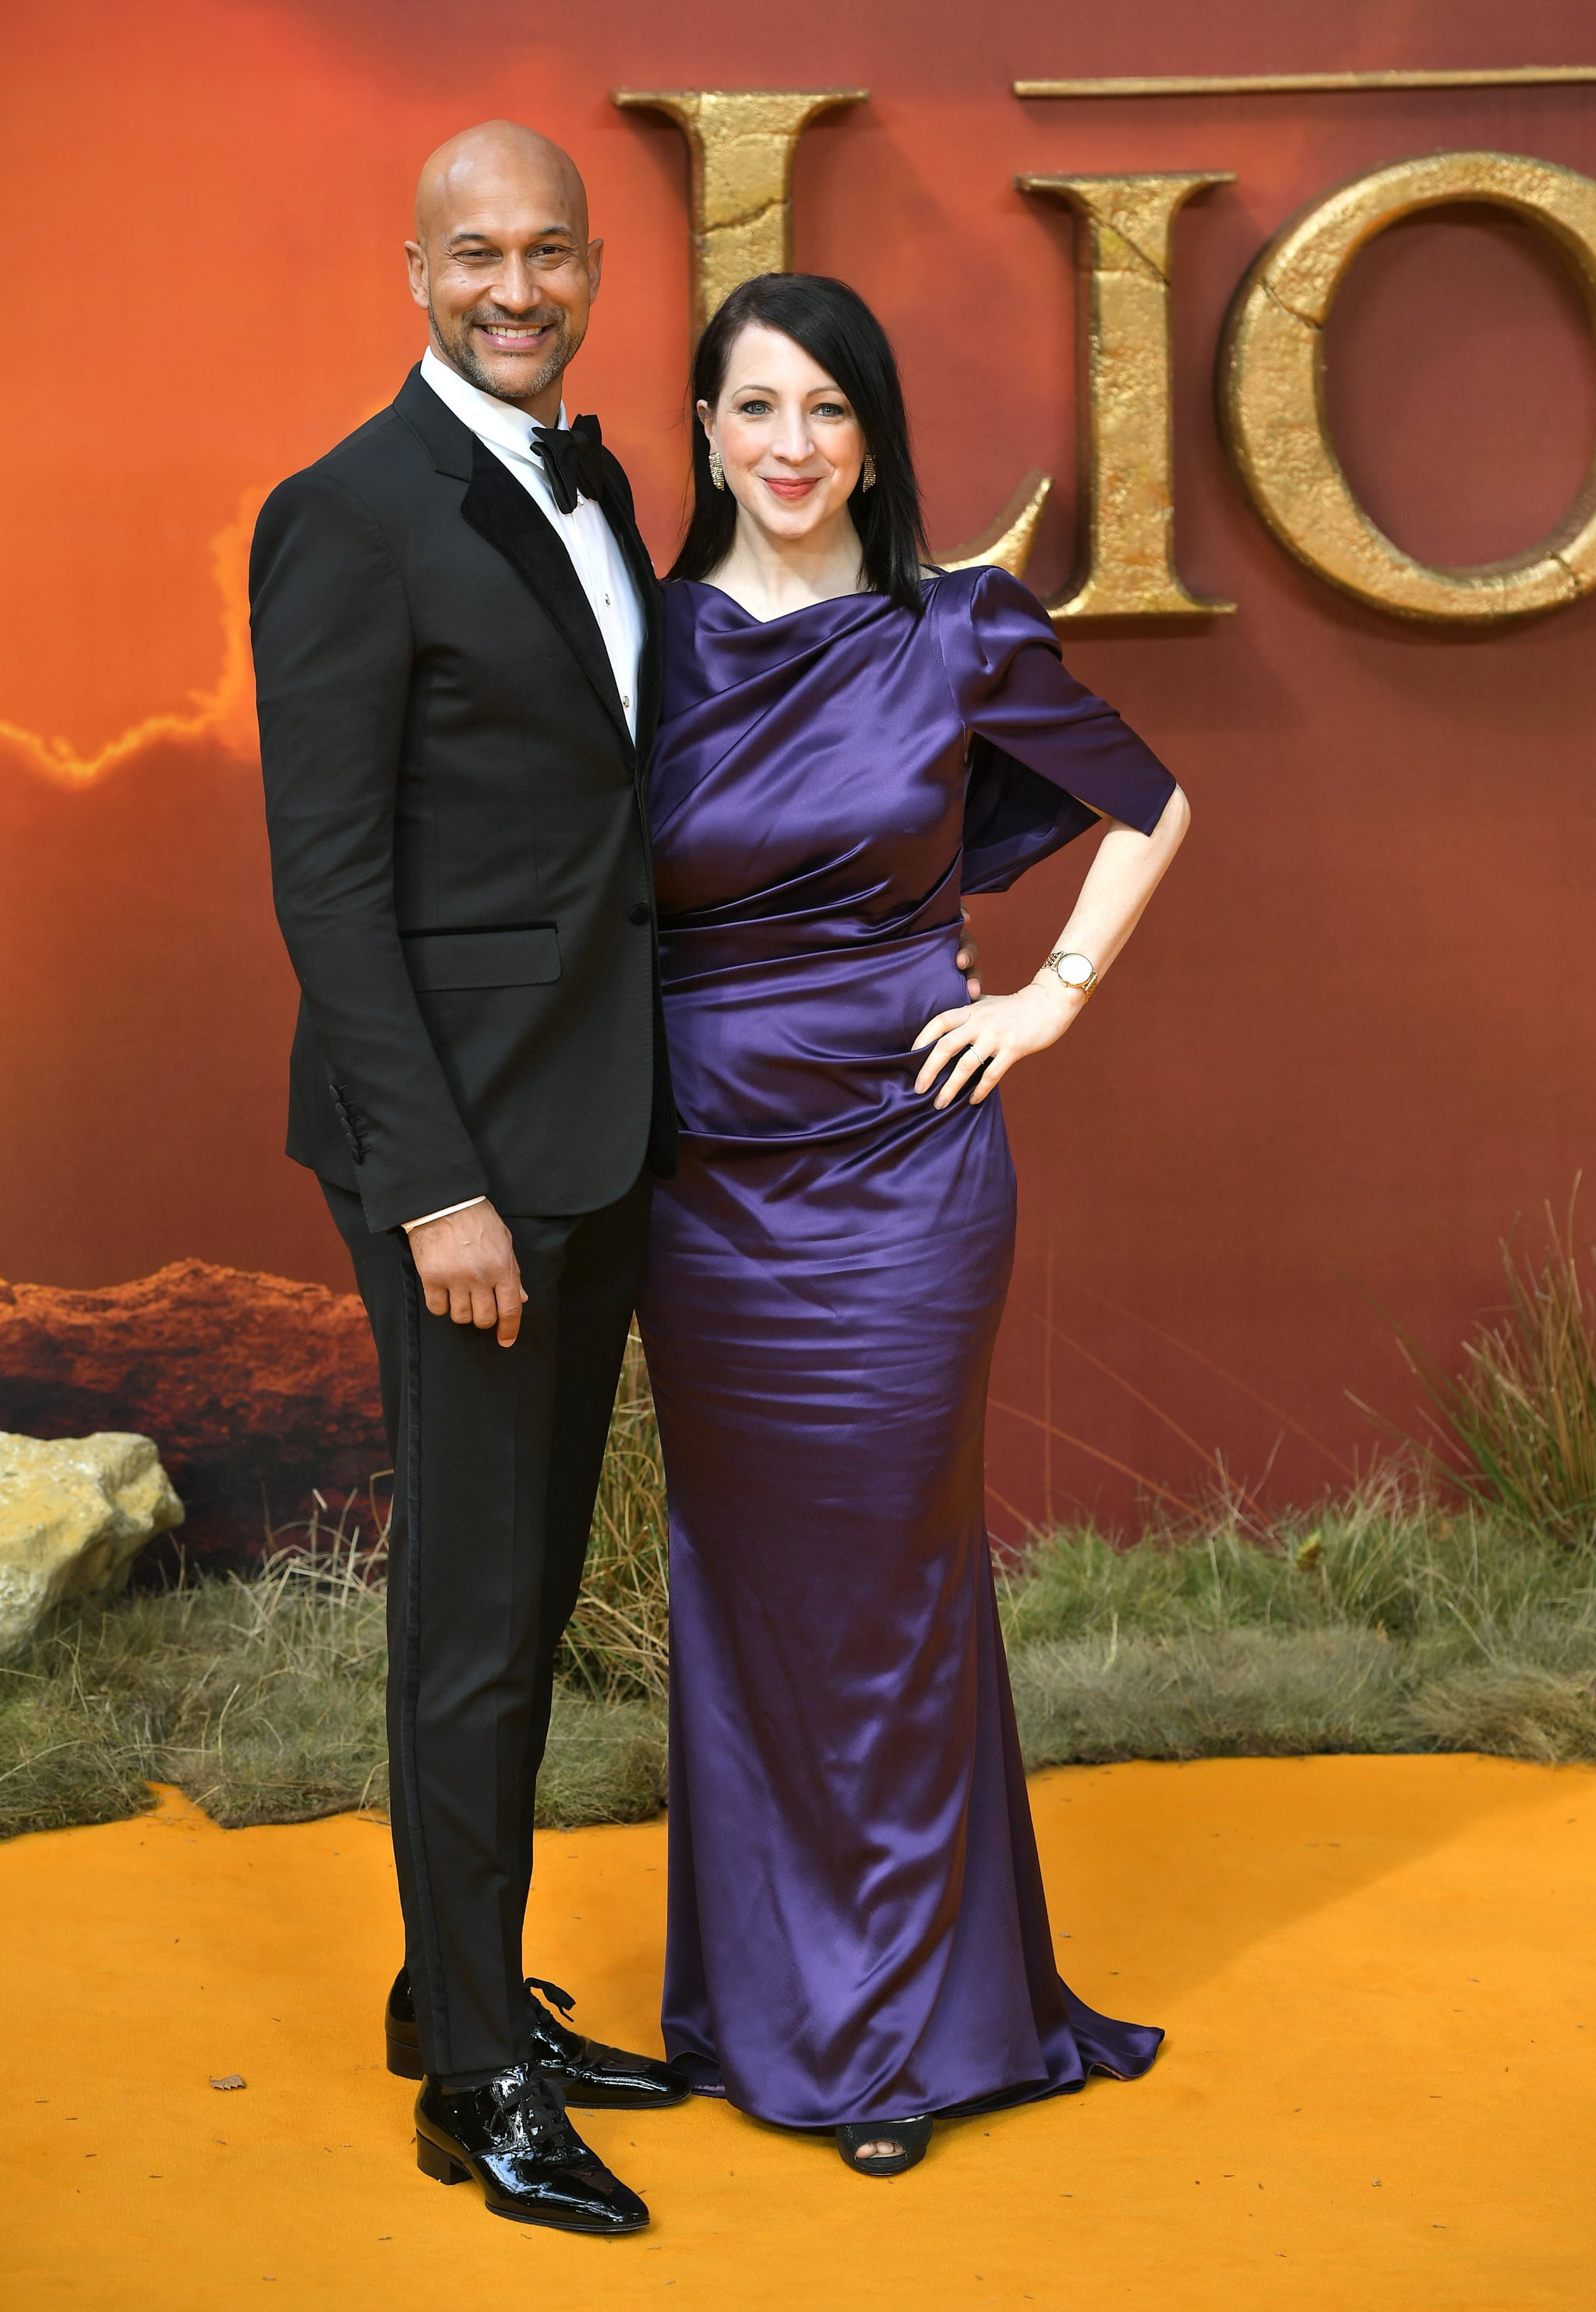 Pictured Keegan Michael Key And Elisa Key At The Lion King